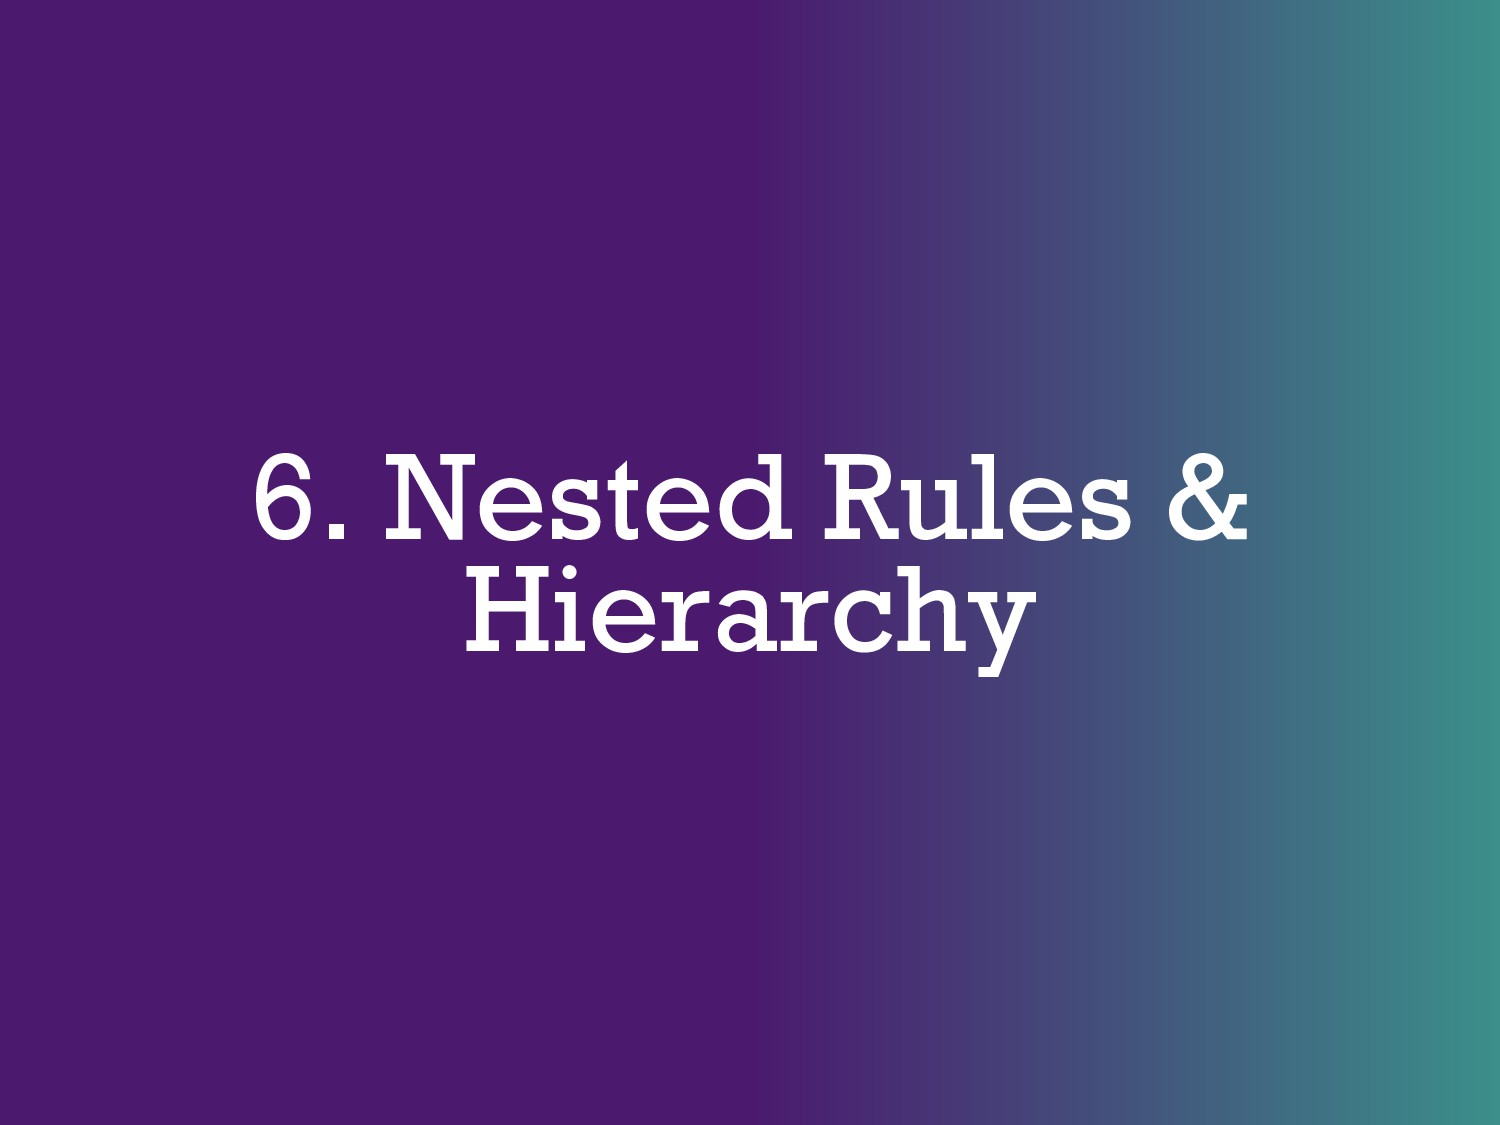 6. Nested Rules & Hierarchy